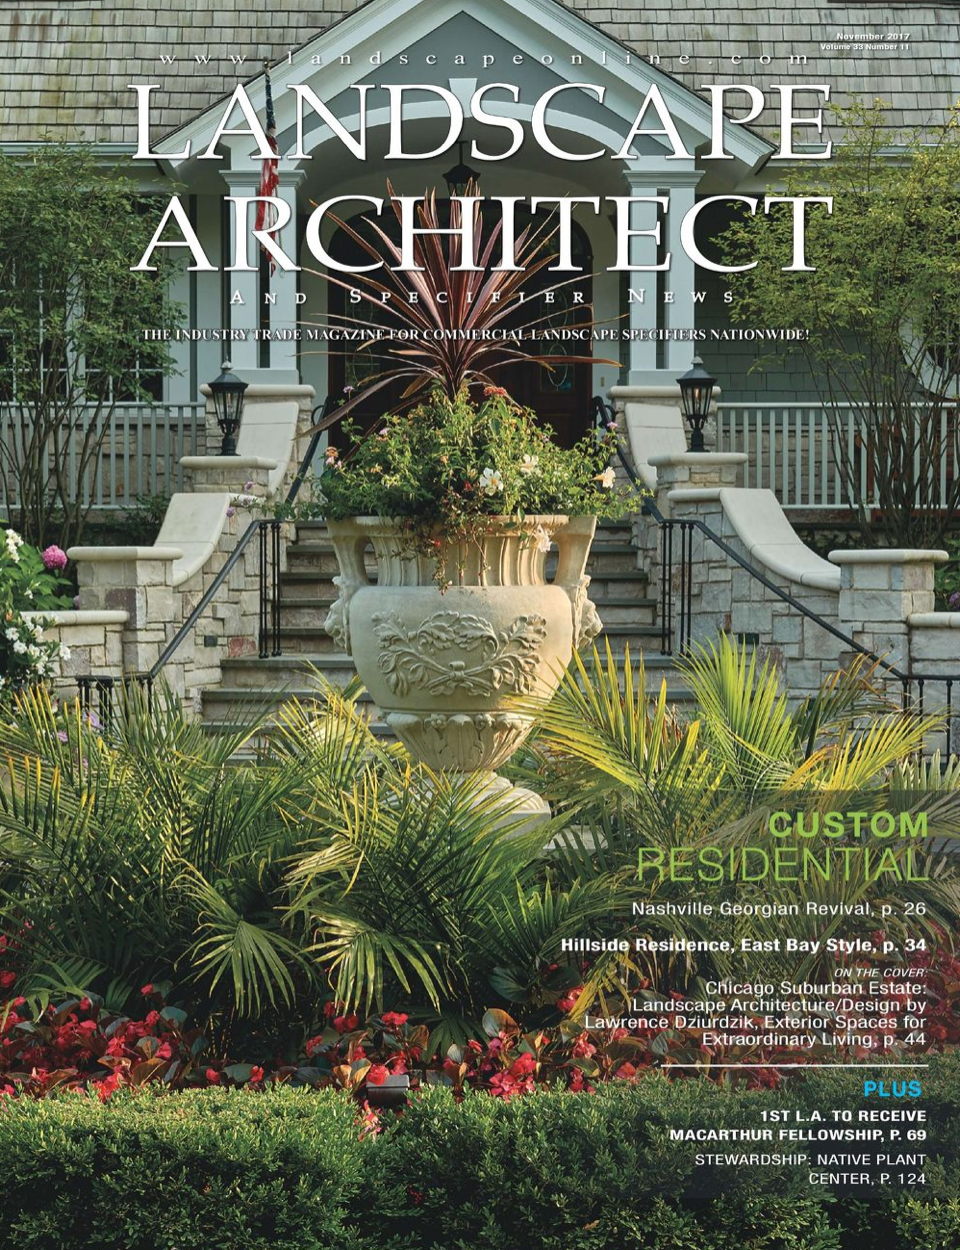 Landscape Architect and Specifier News Magazine.png